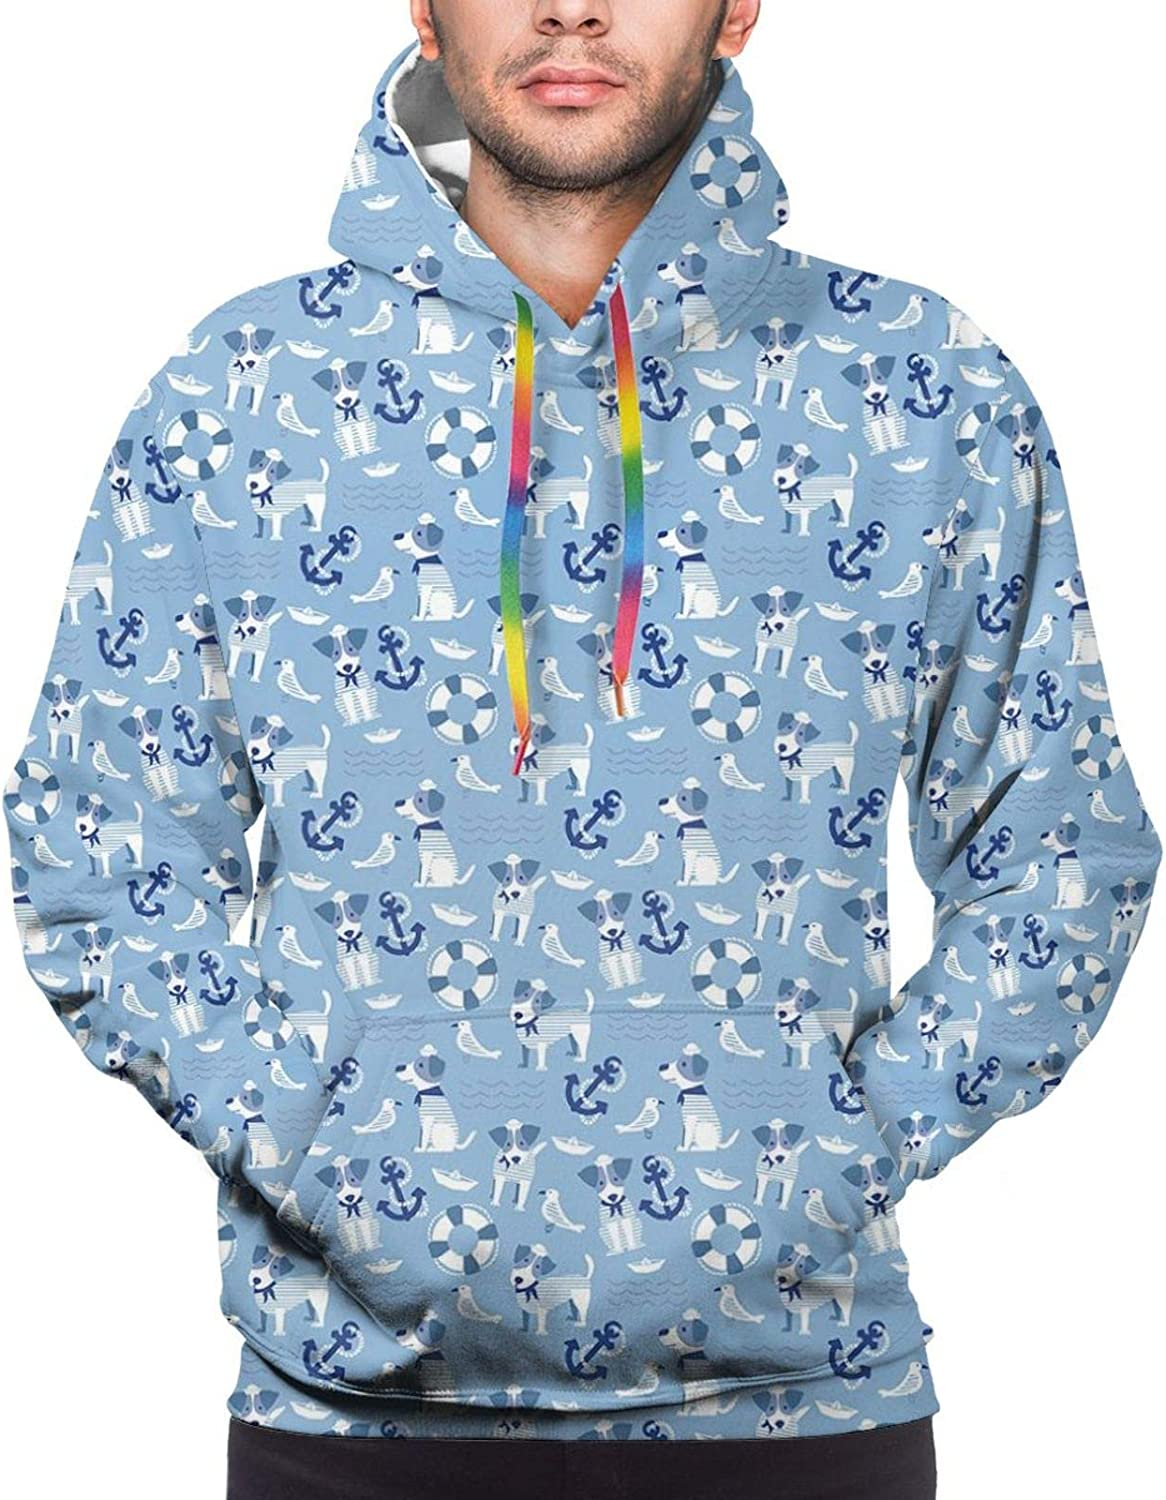 Men's Hoodies Sweatshirts,Sailor Terrier Cute Dog Figure with Maritime Objects Sea Pets and Birds